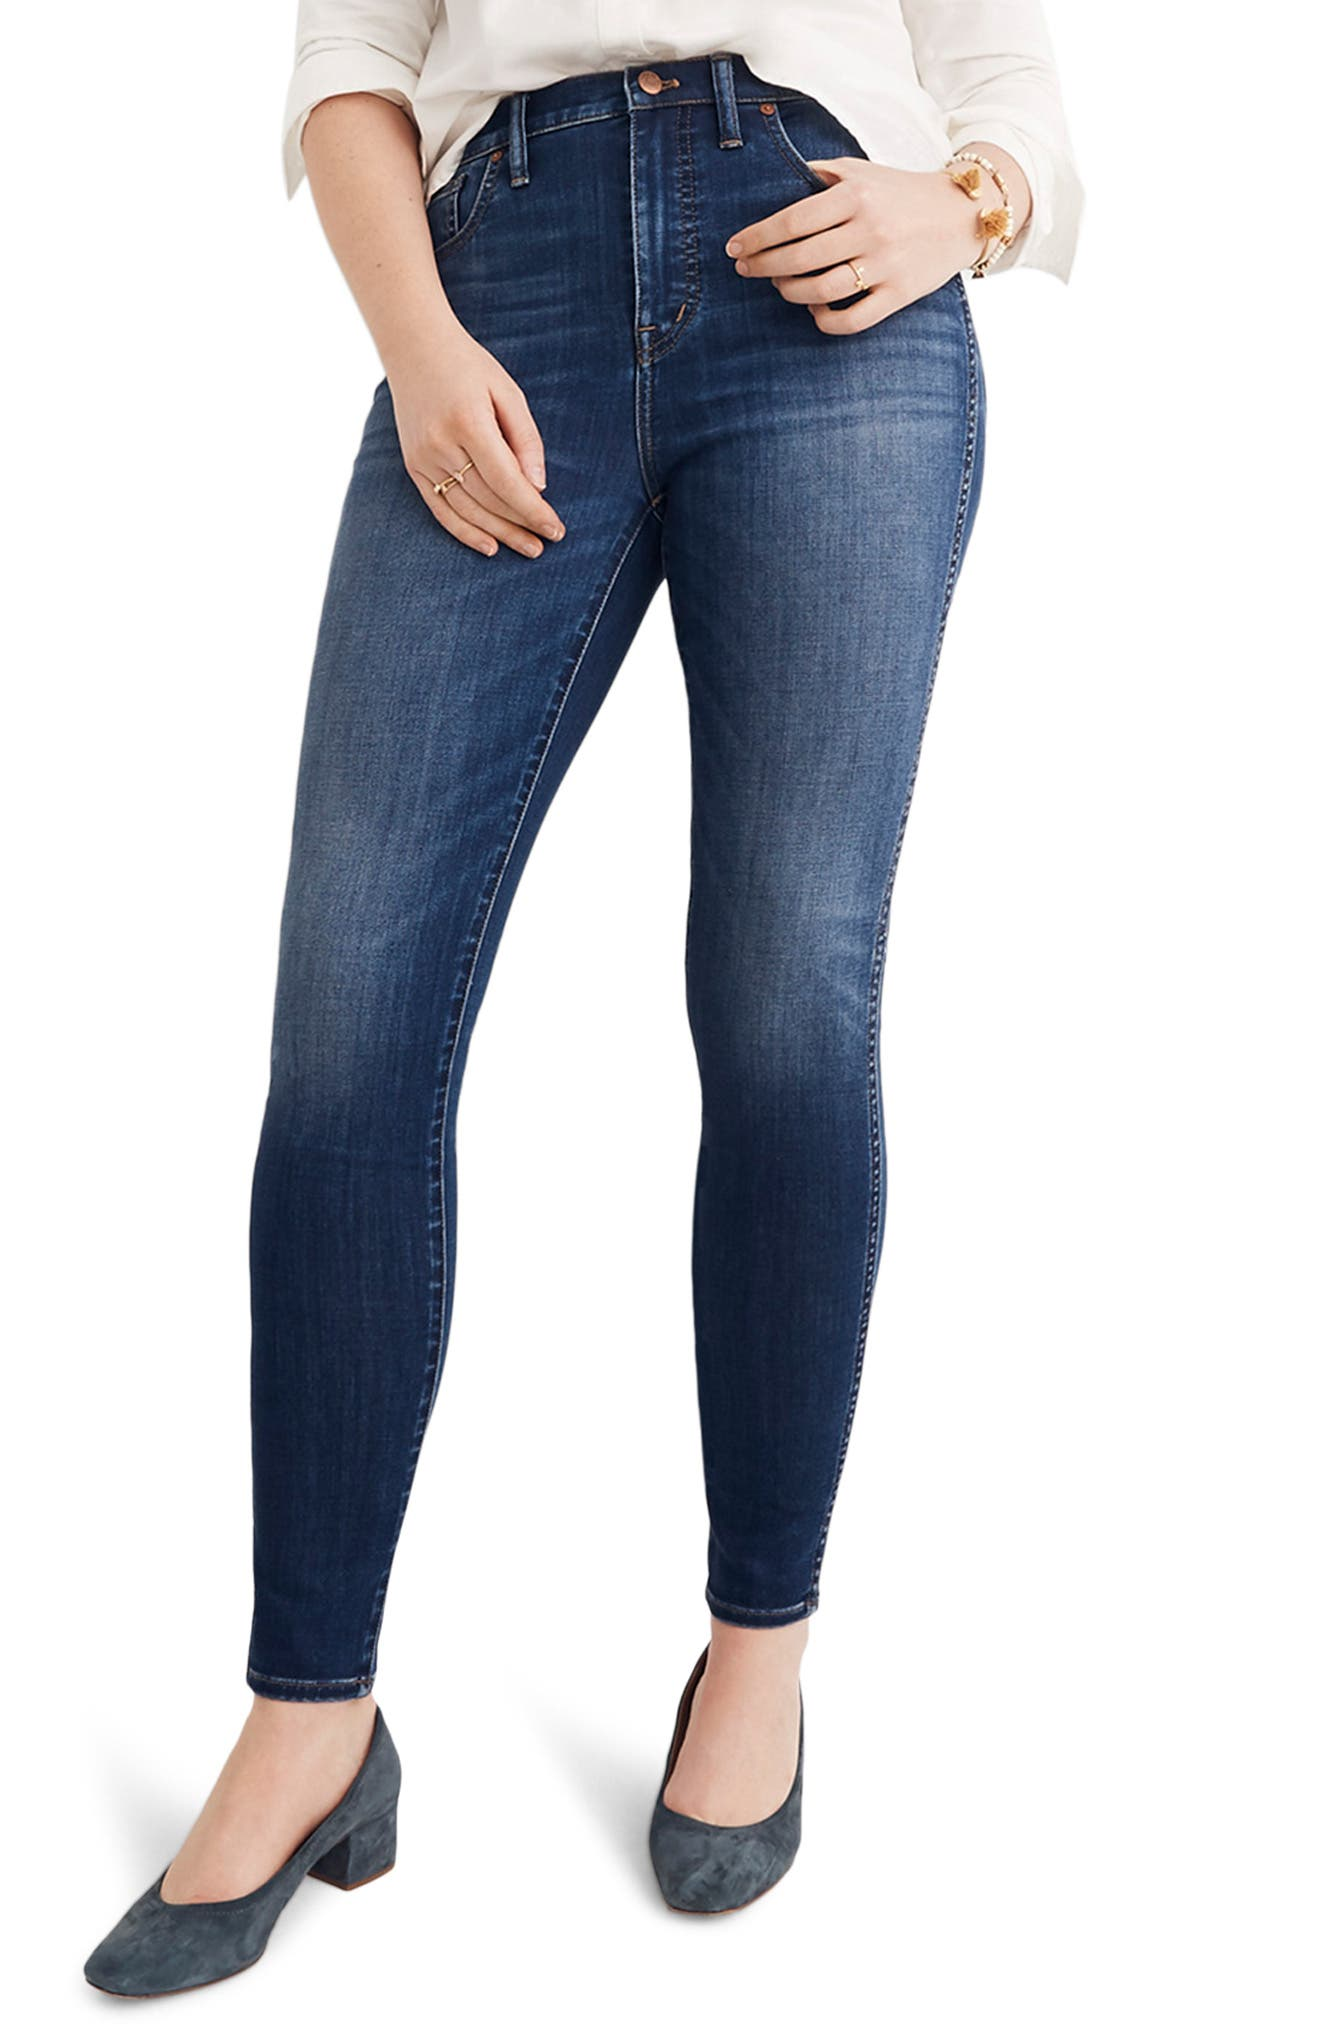 10-Inch High Rise Skinny Jeans